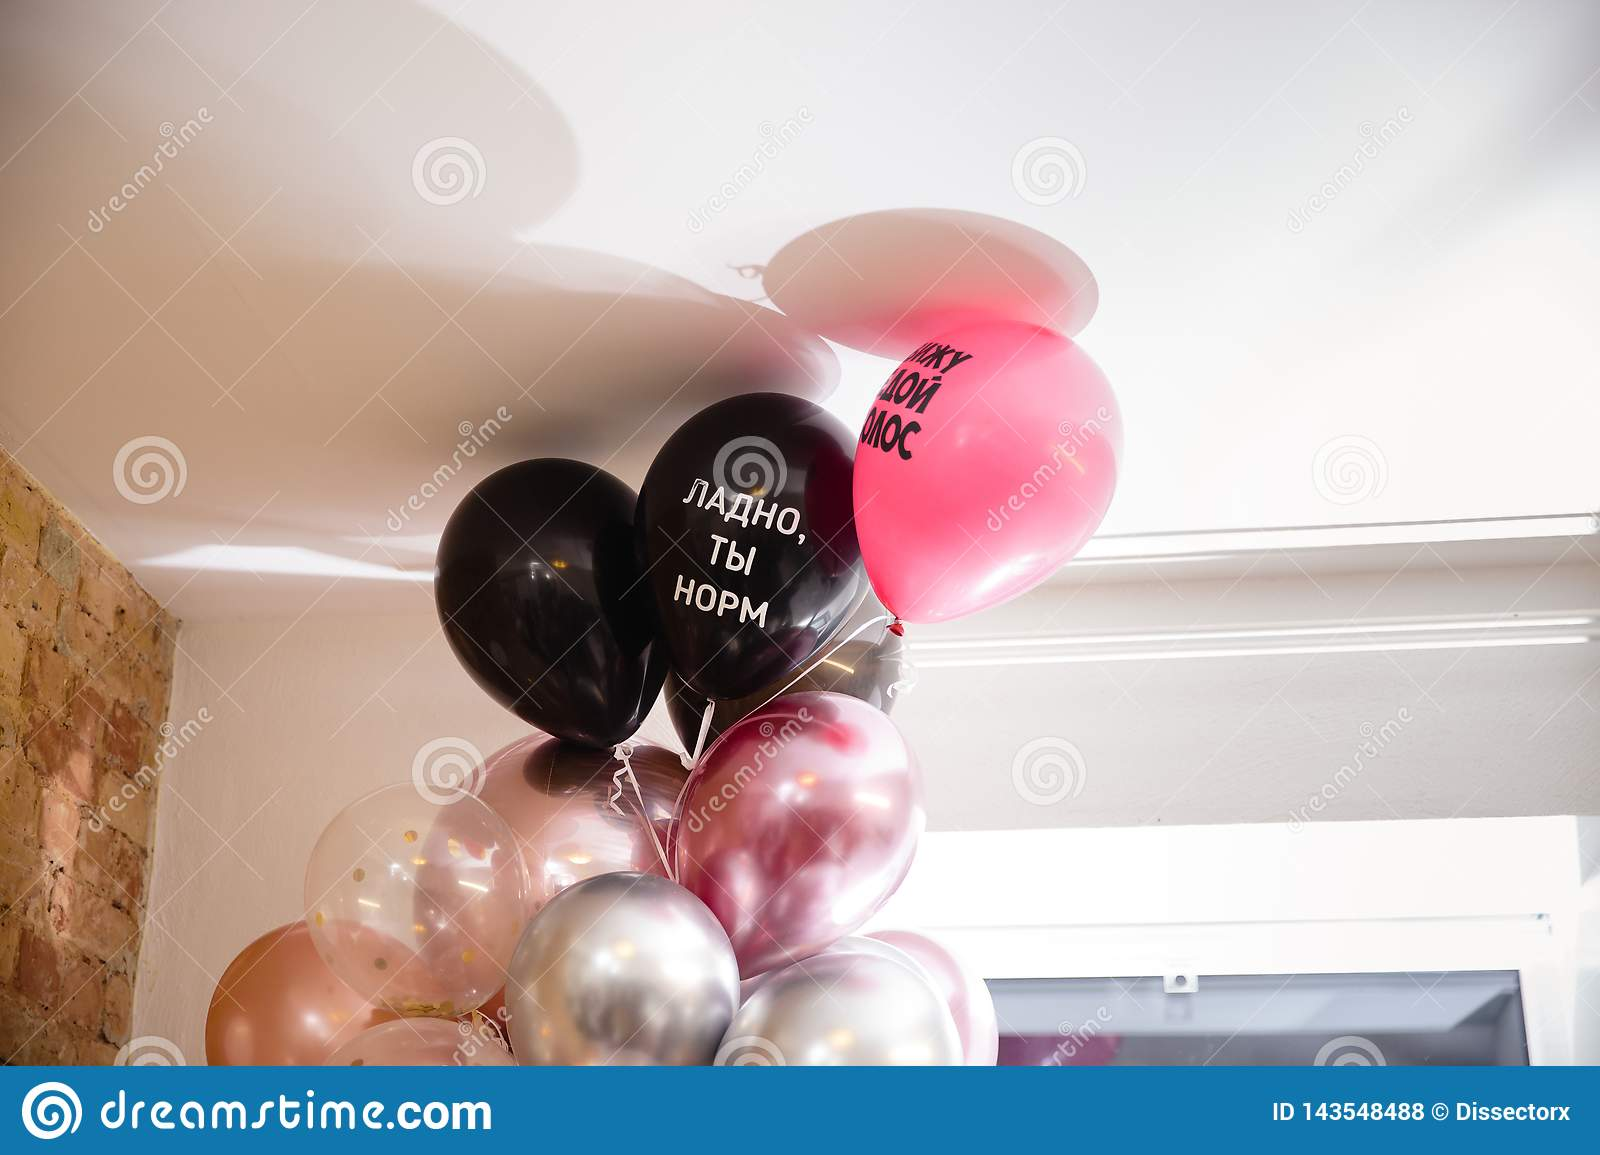 Birthday balloons under a ceiling with russian words Ok, you are fine and I see a gray hair